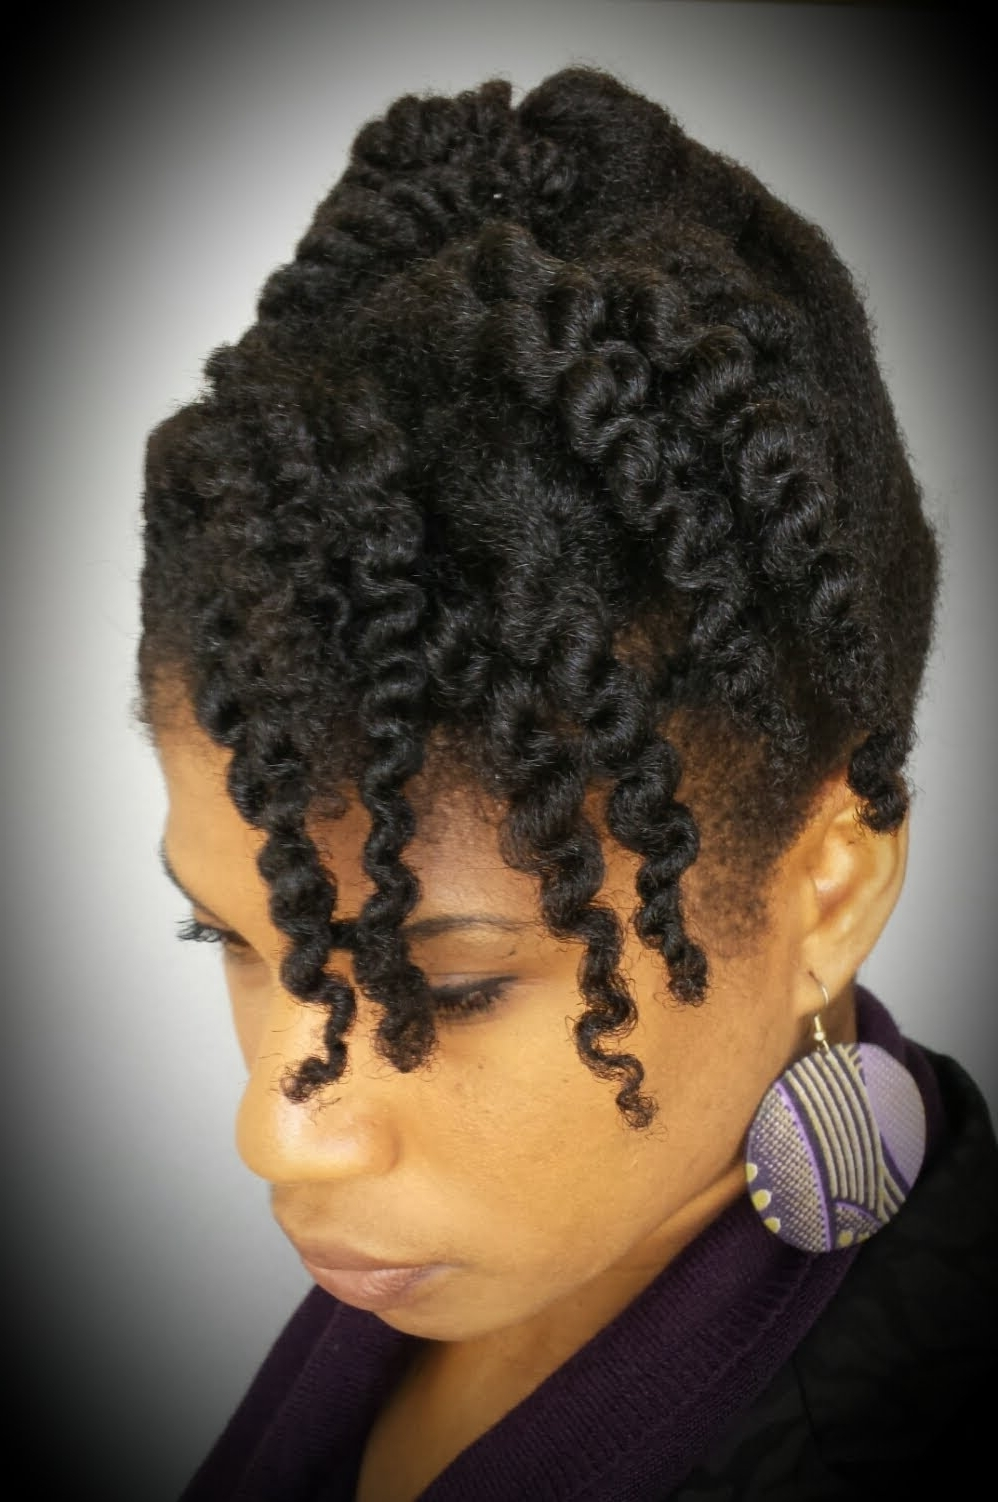 4 Natural Hair 10 Minute Cornrow And Twist Updo (Protective Style Within Updo Cornrow Hairstyles (View 1 of 15)